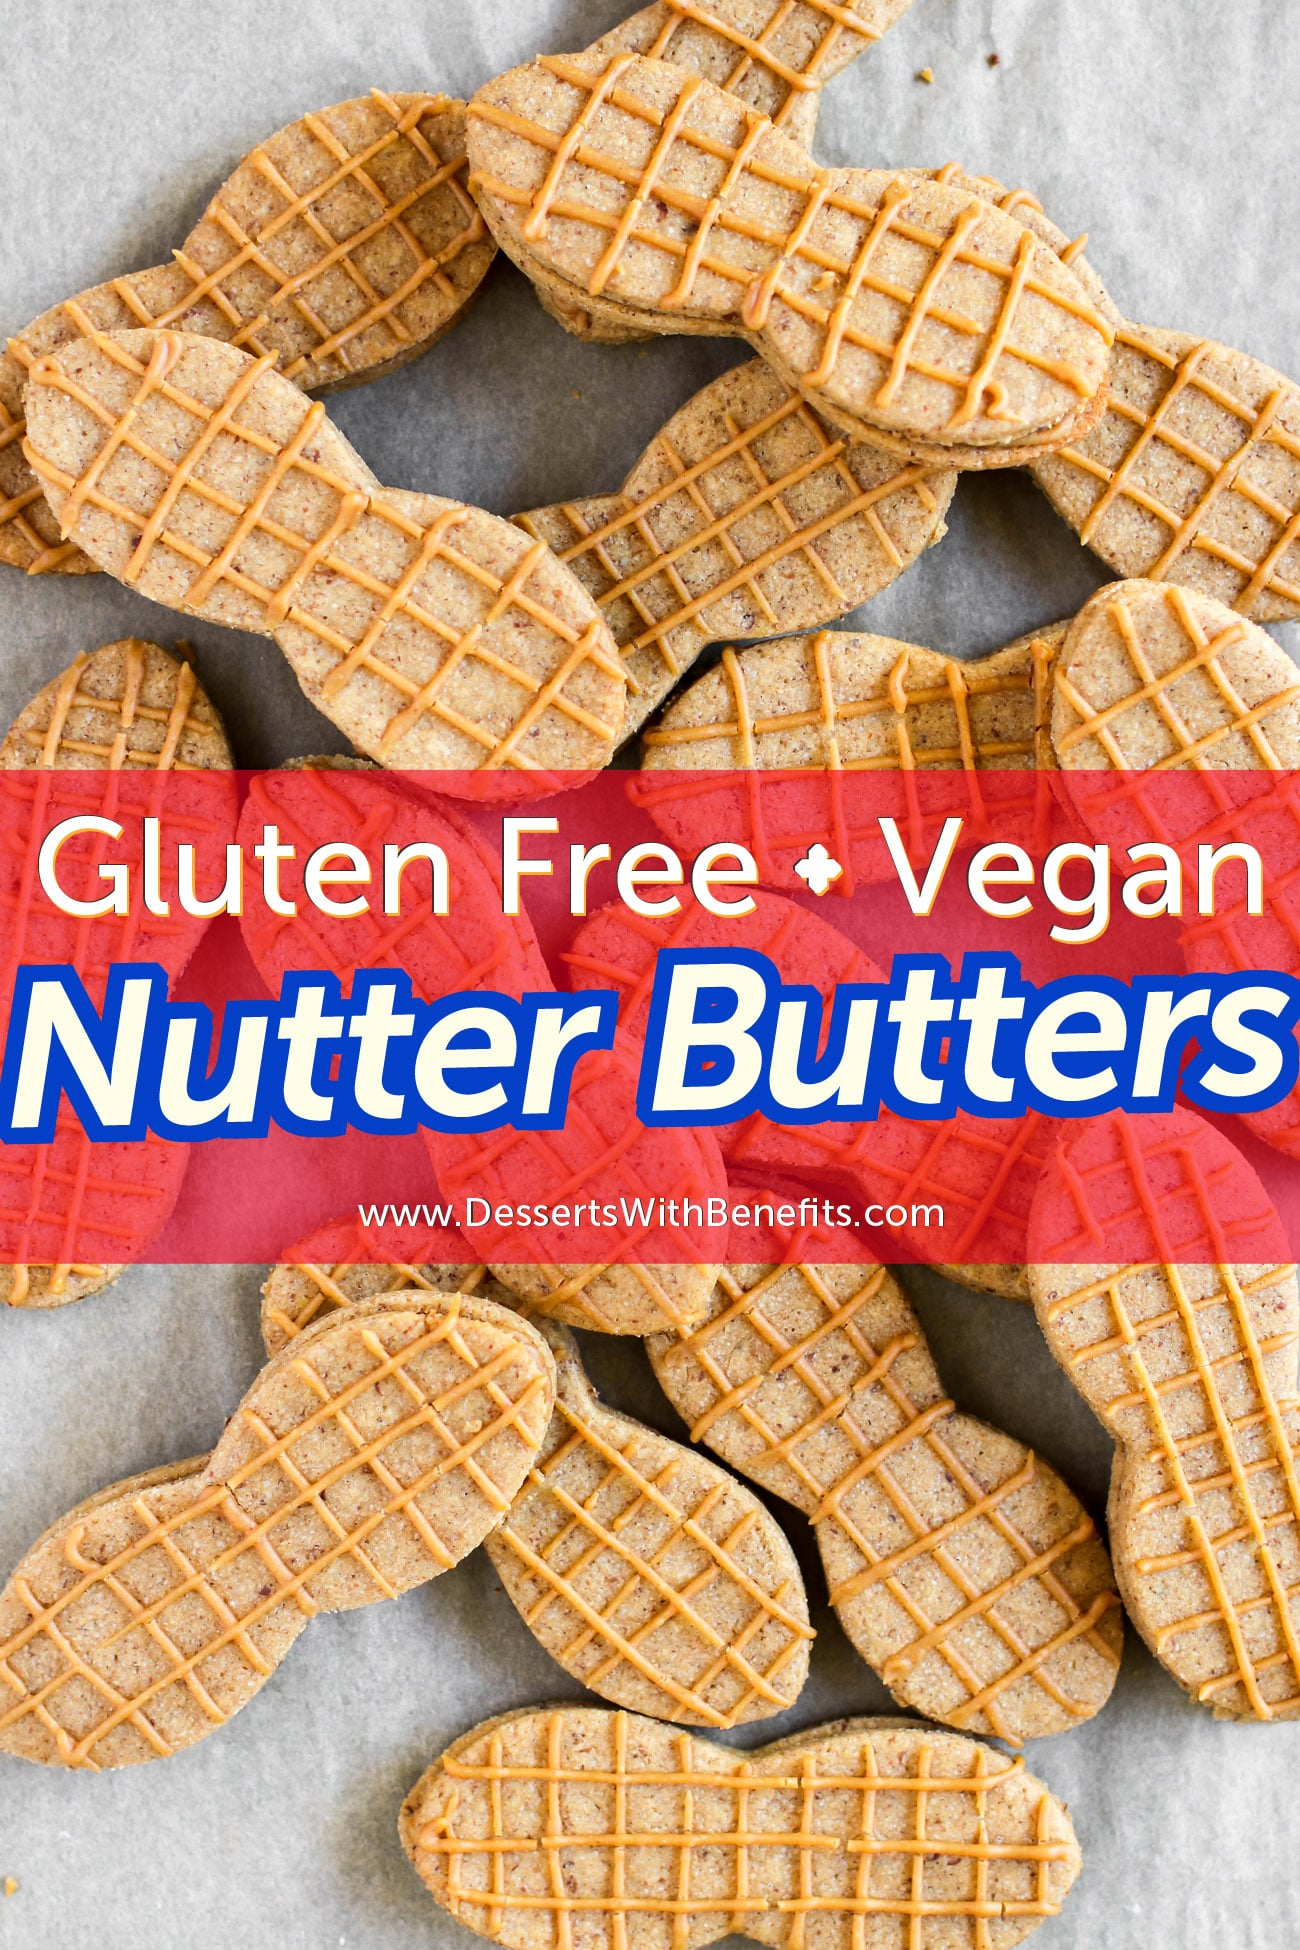 Just as delicious as the storebought kinds but made without the corn syrup and trans fats, these 80-calorie healthy Homemade Nutter Butters will blow your mind! This DIY recipe is sugar free, high protein, gluten free, dairy free, and vegan too -- made with natural peanut butter, oats, and all natural stevia extract.